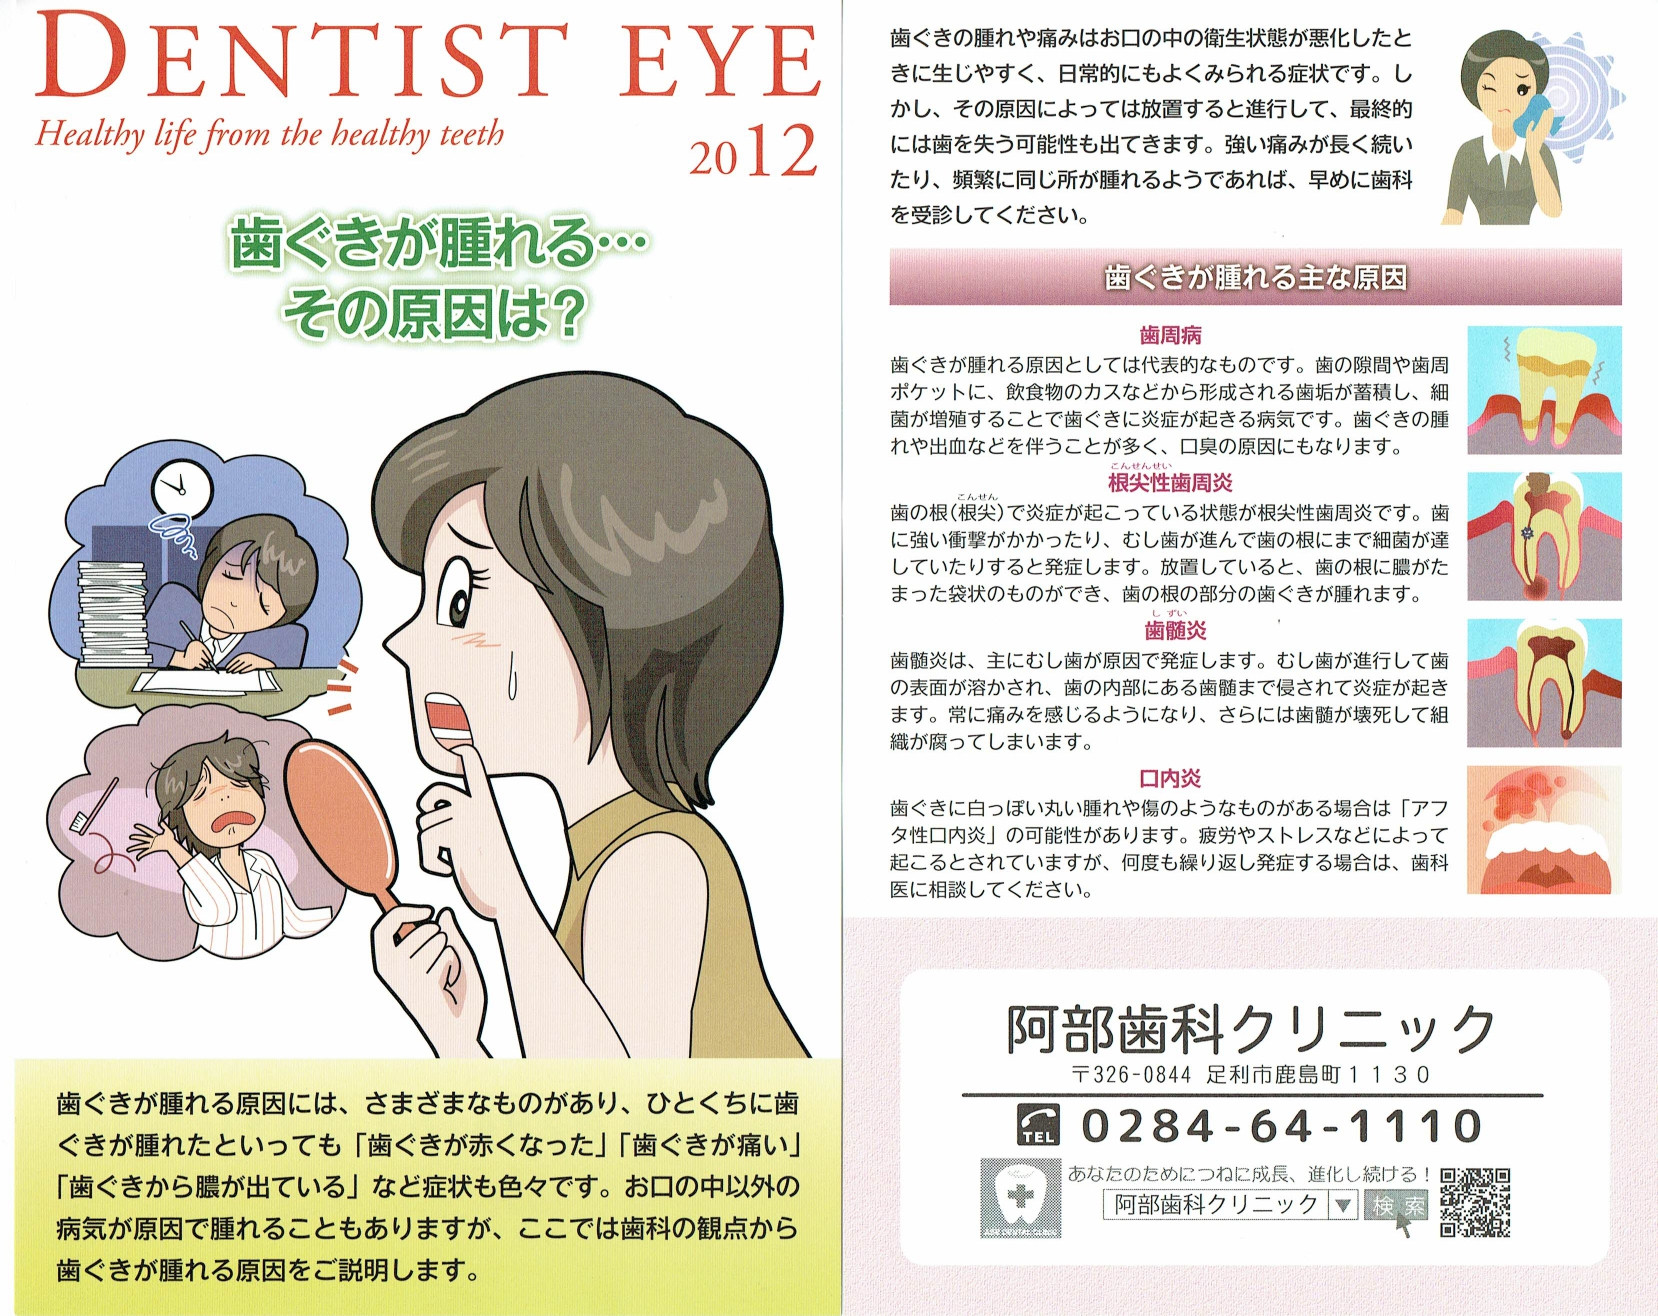 DENTIST EYE 2012